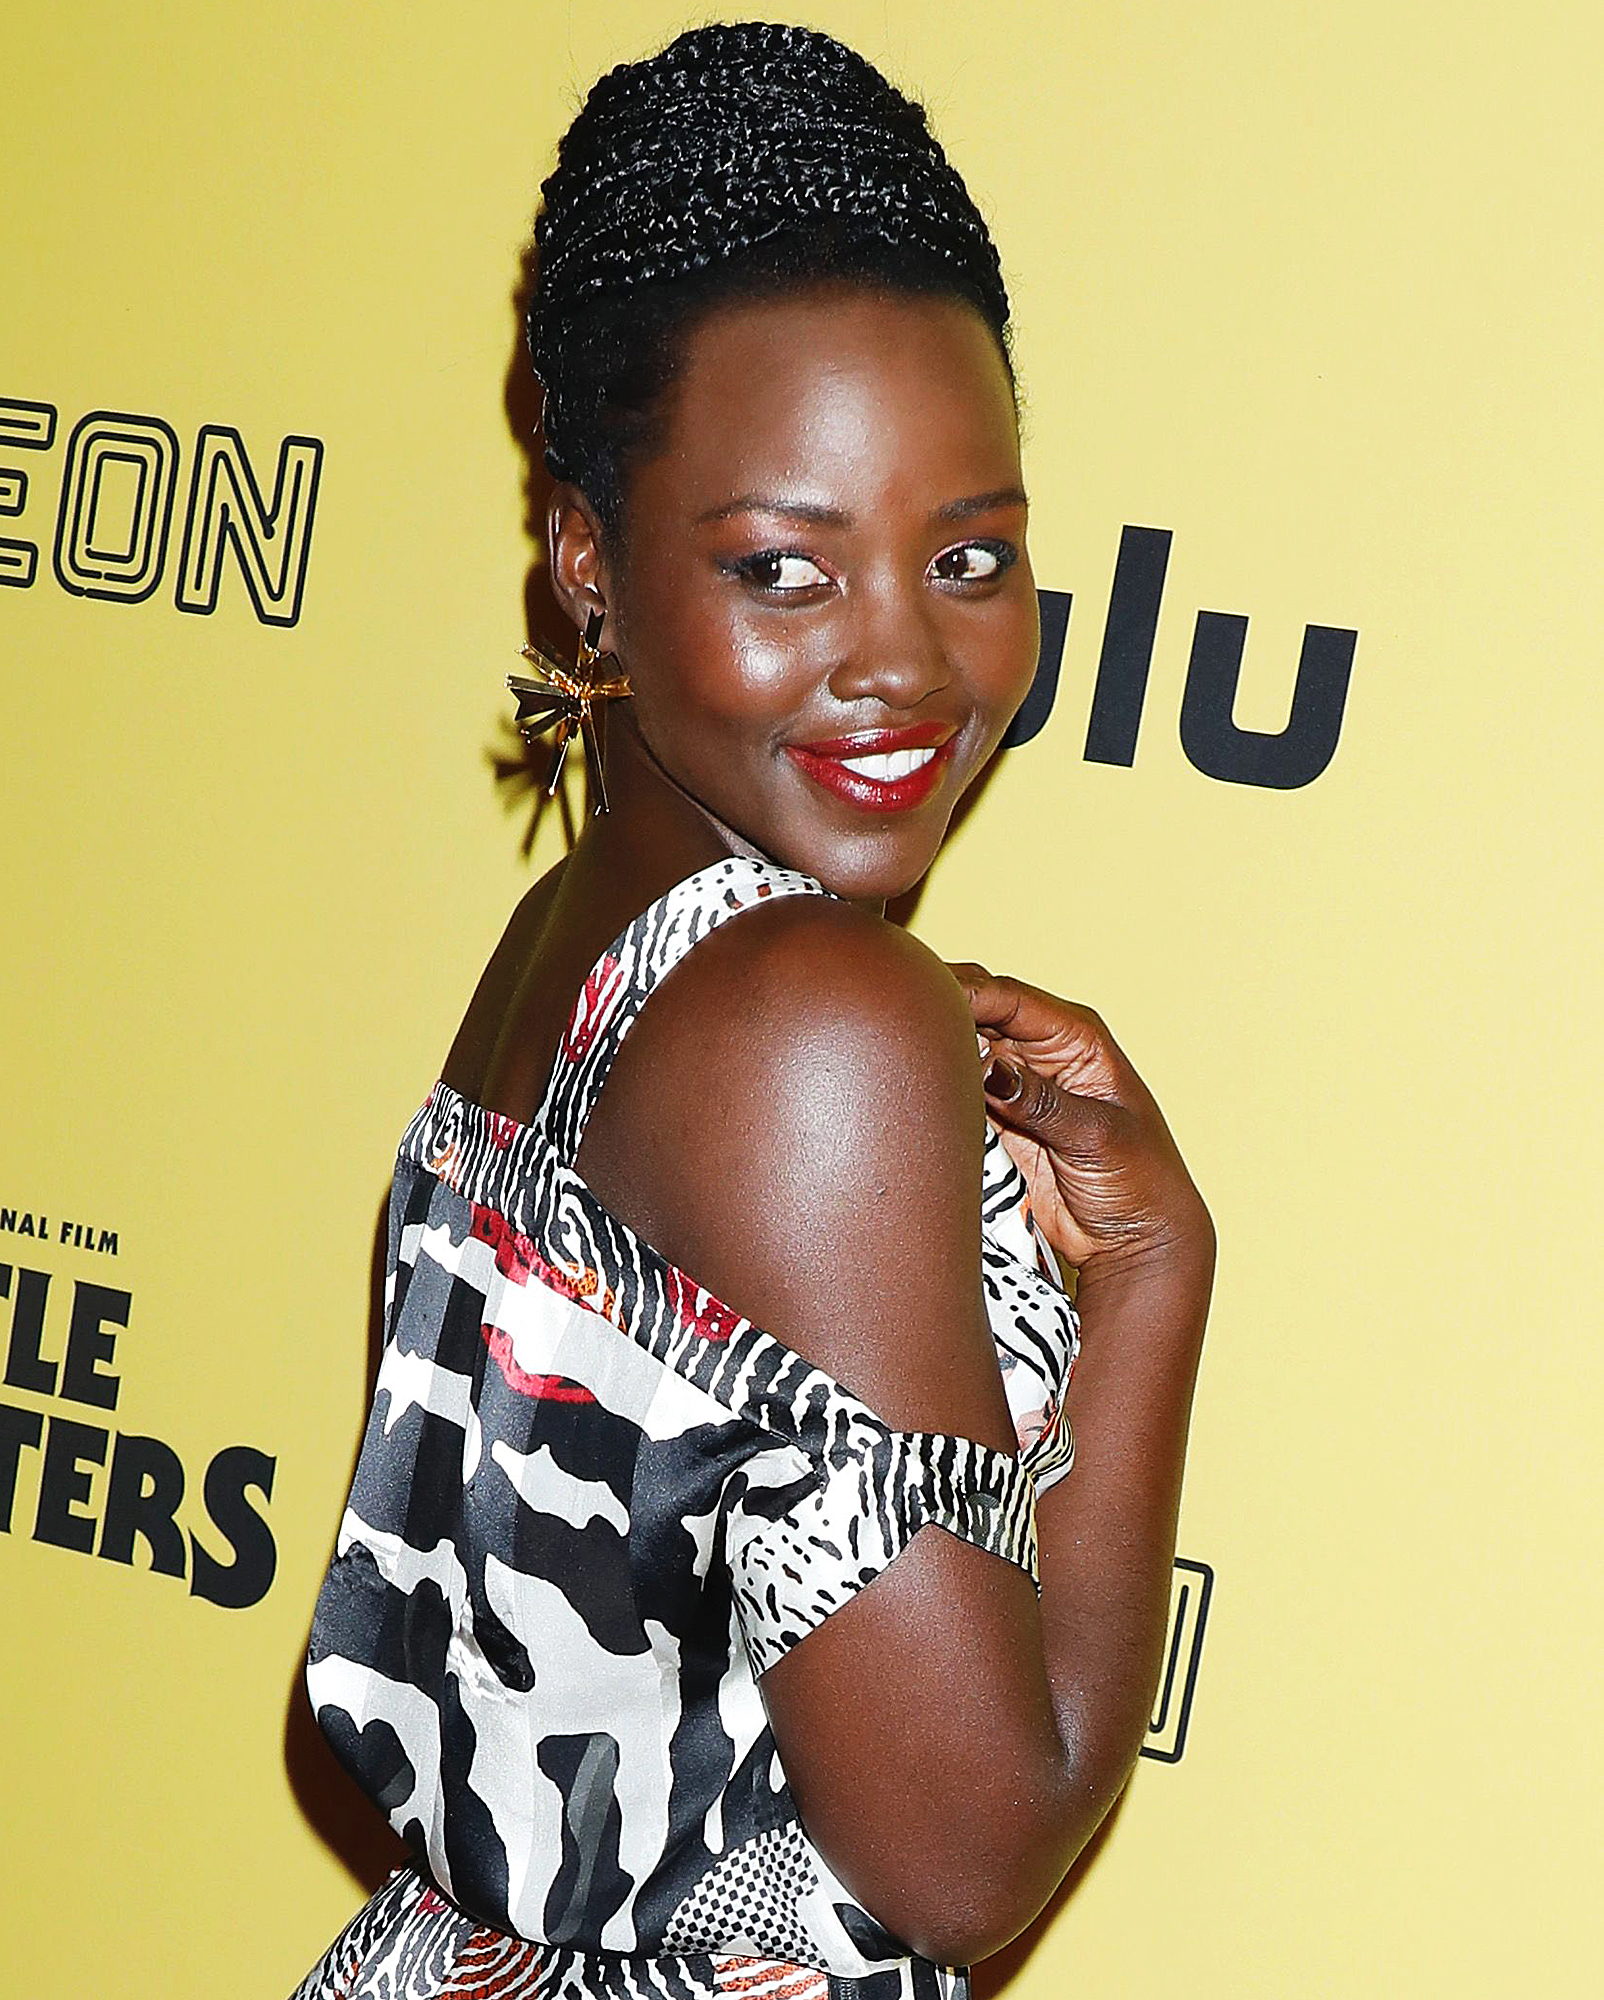 Lupita-Nyong'o-Says-She-Has-No-Plans-For-An-Album